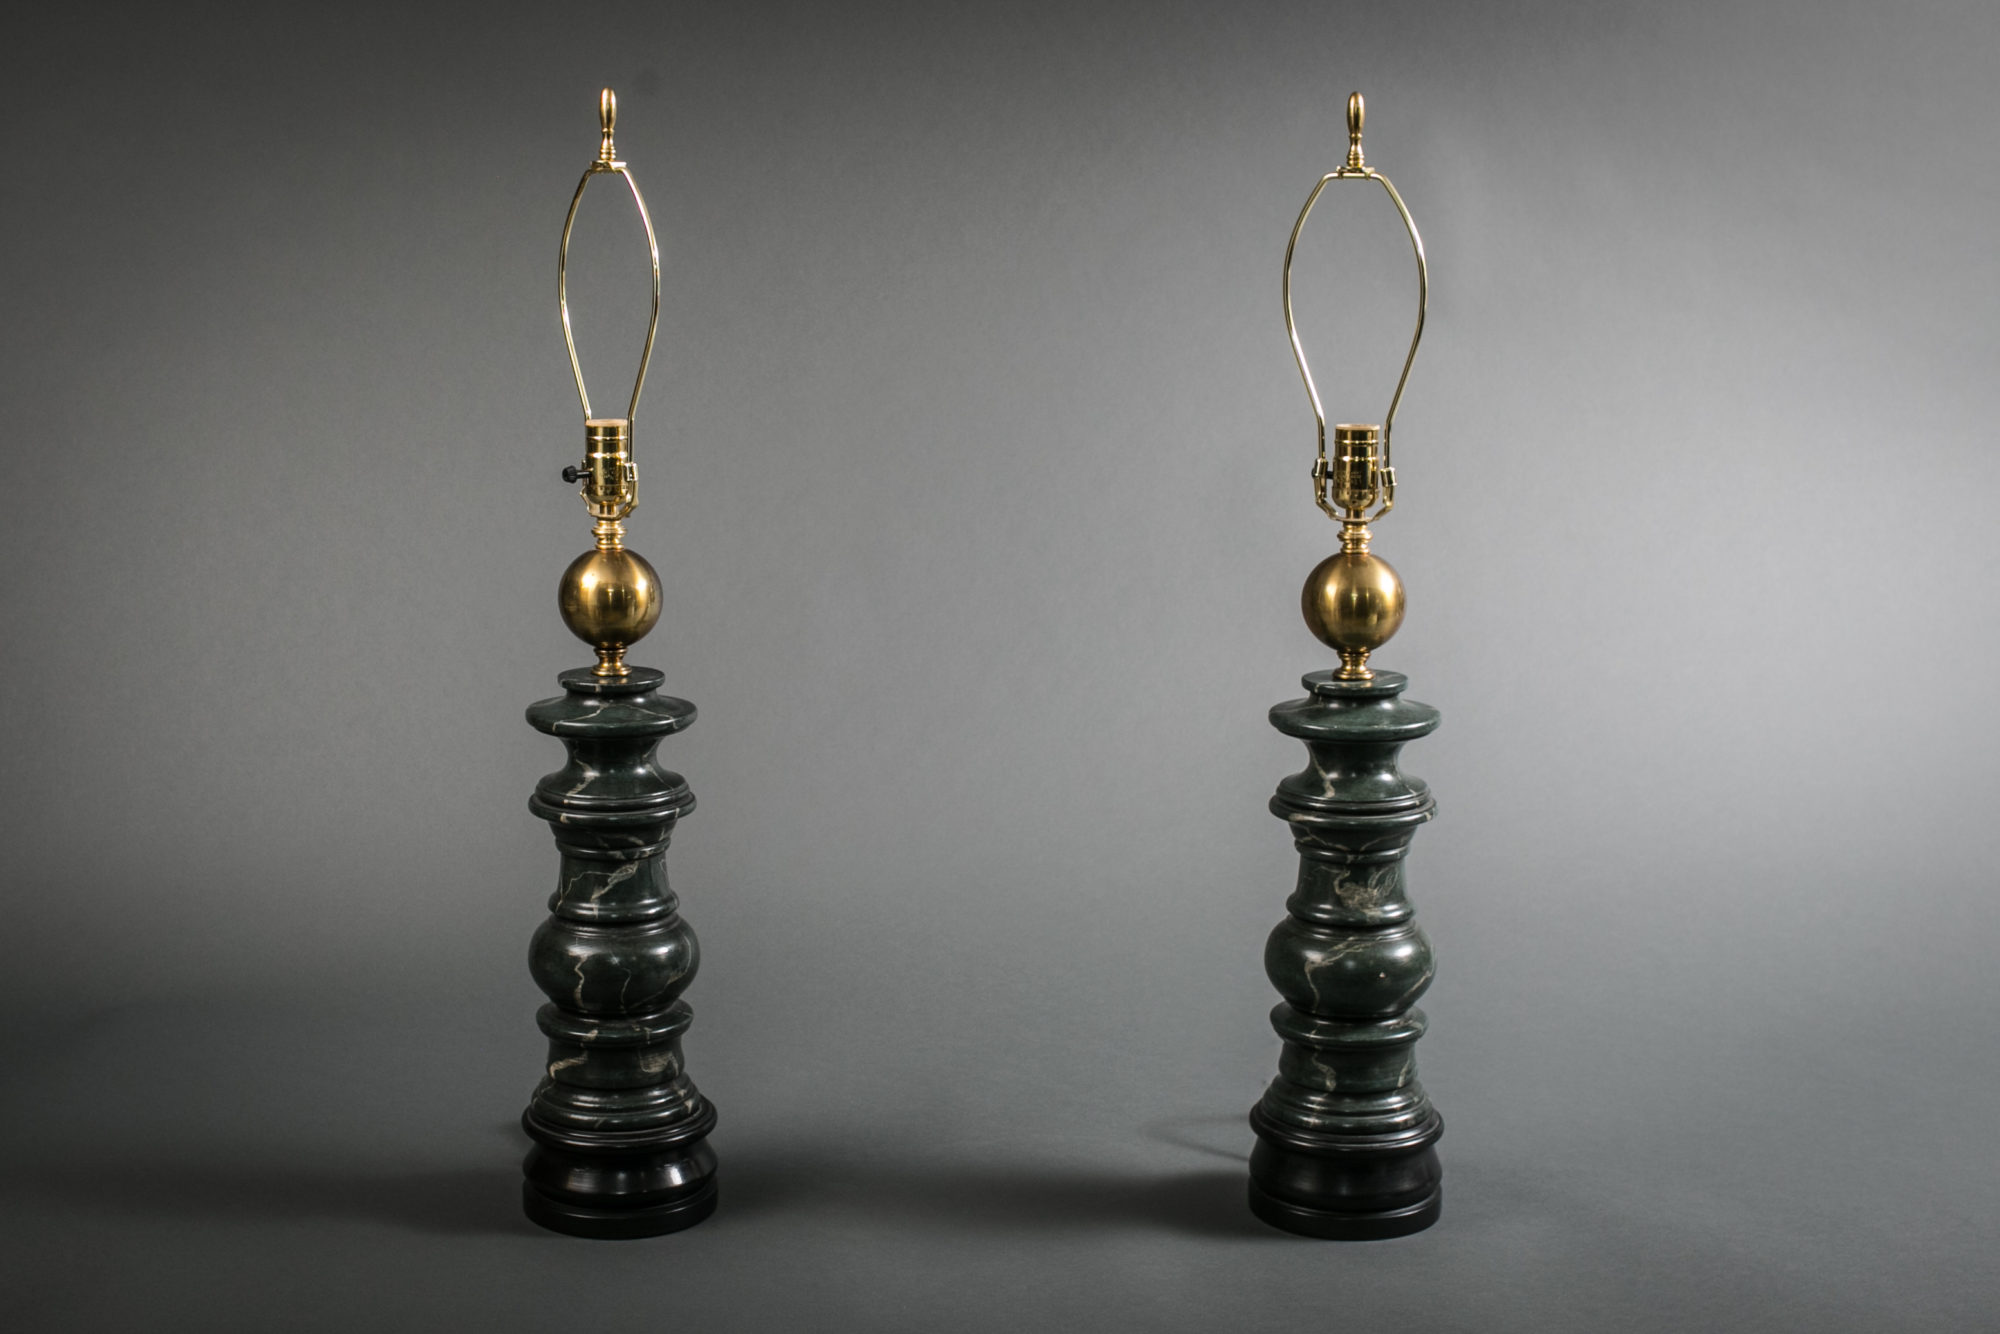 Pair of Neoclassical Style Turnwood and Faux Marble Painted Lamps